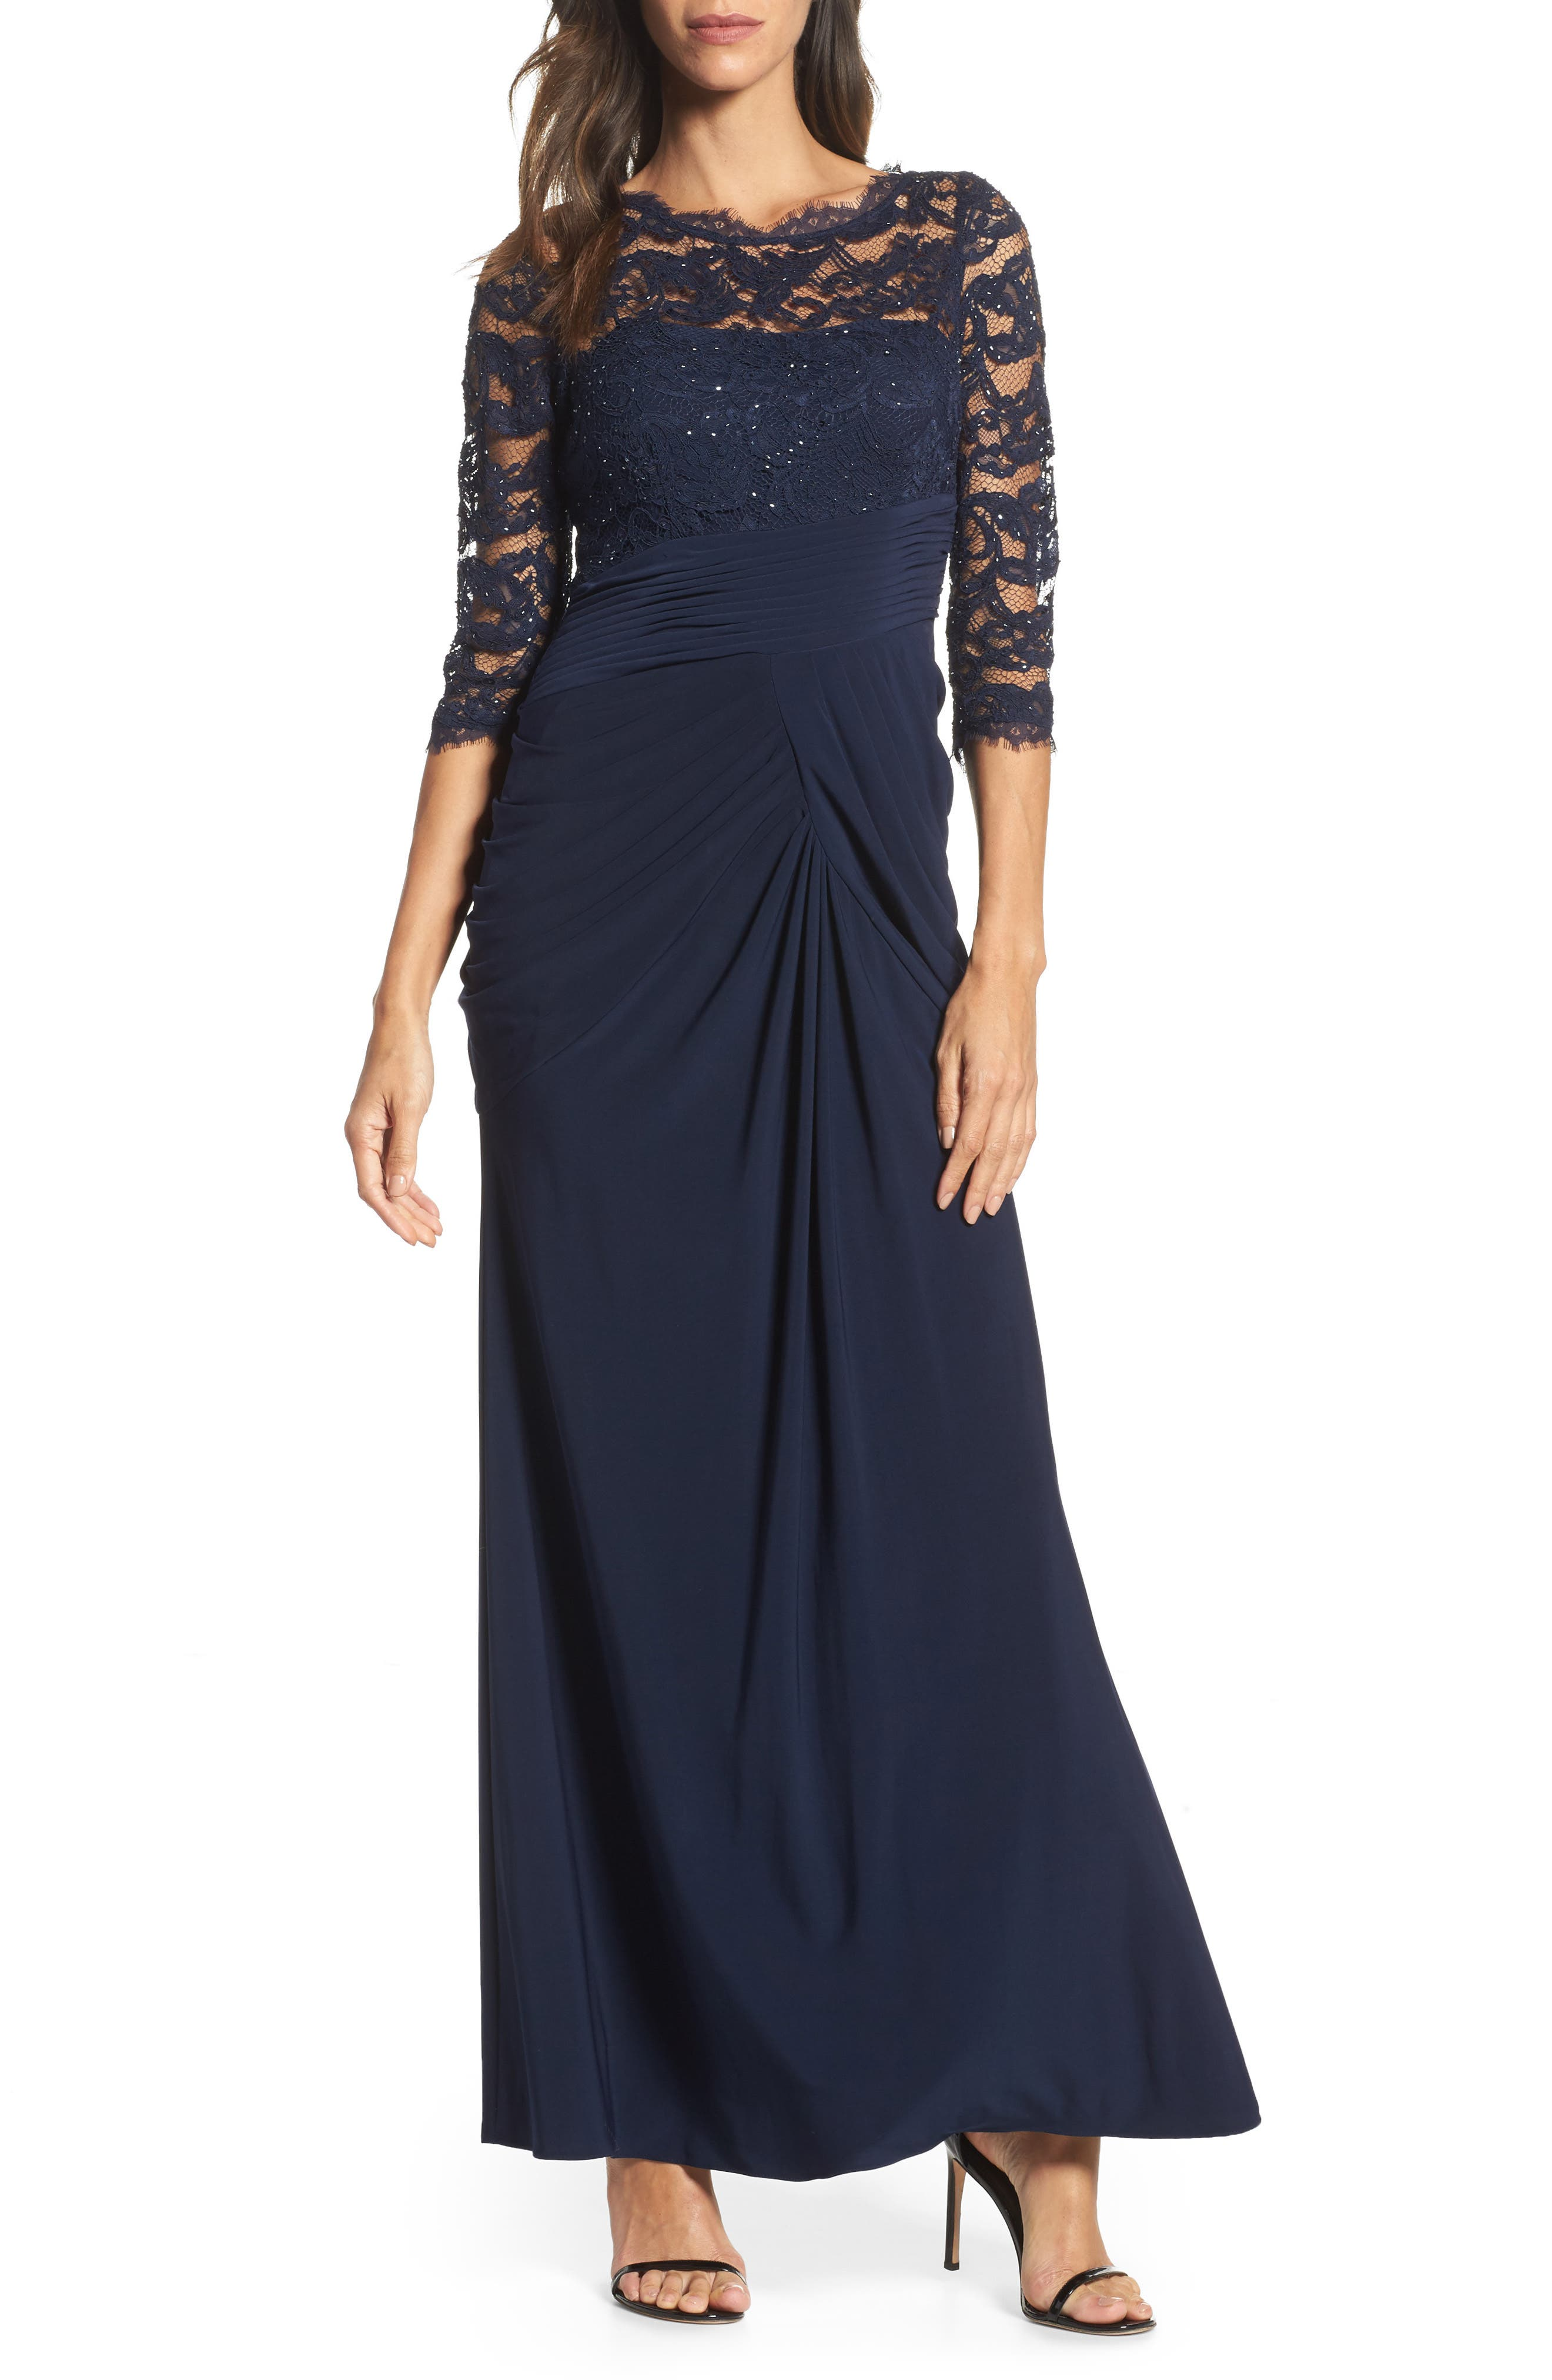 Adrianna papell evening dresses sale